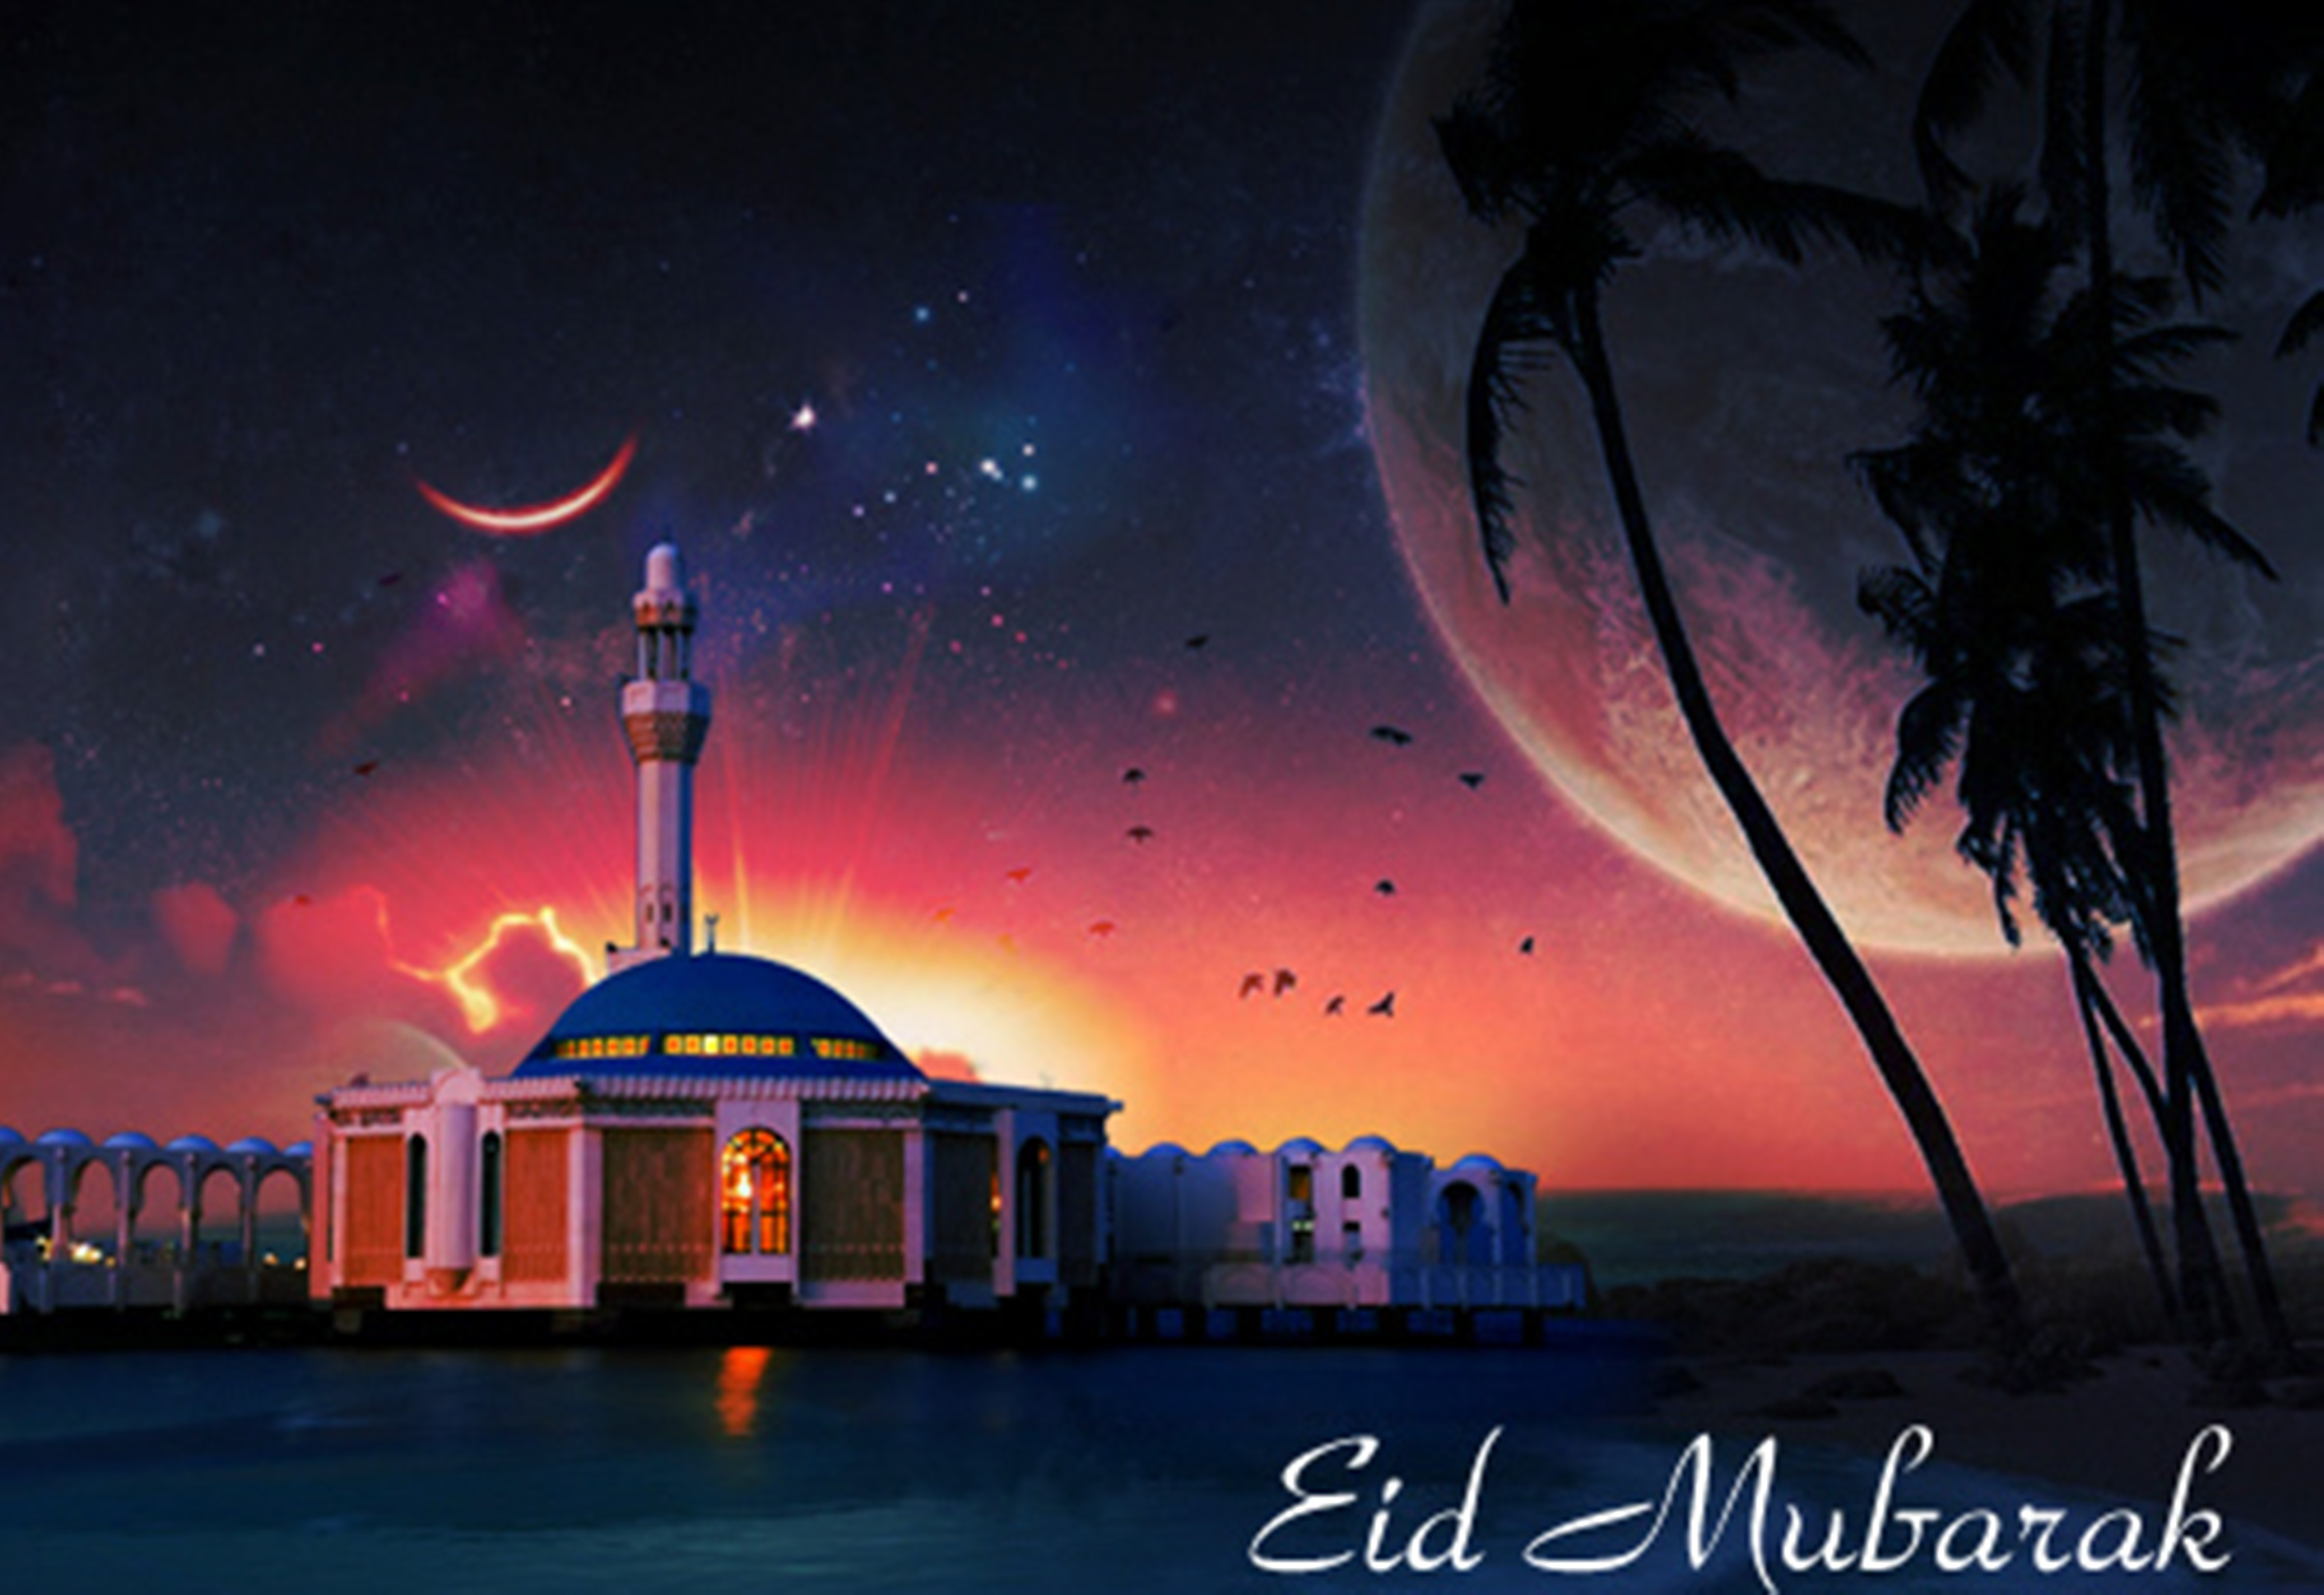 eid mubarak hd wallpapers pictures images with best wishes